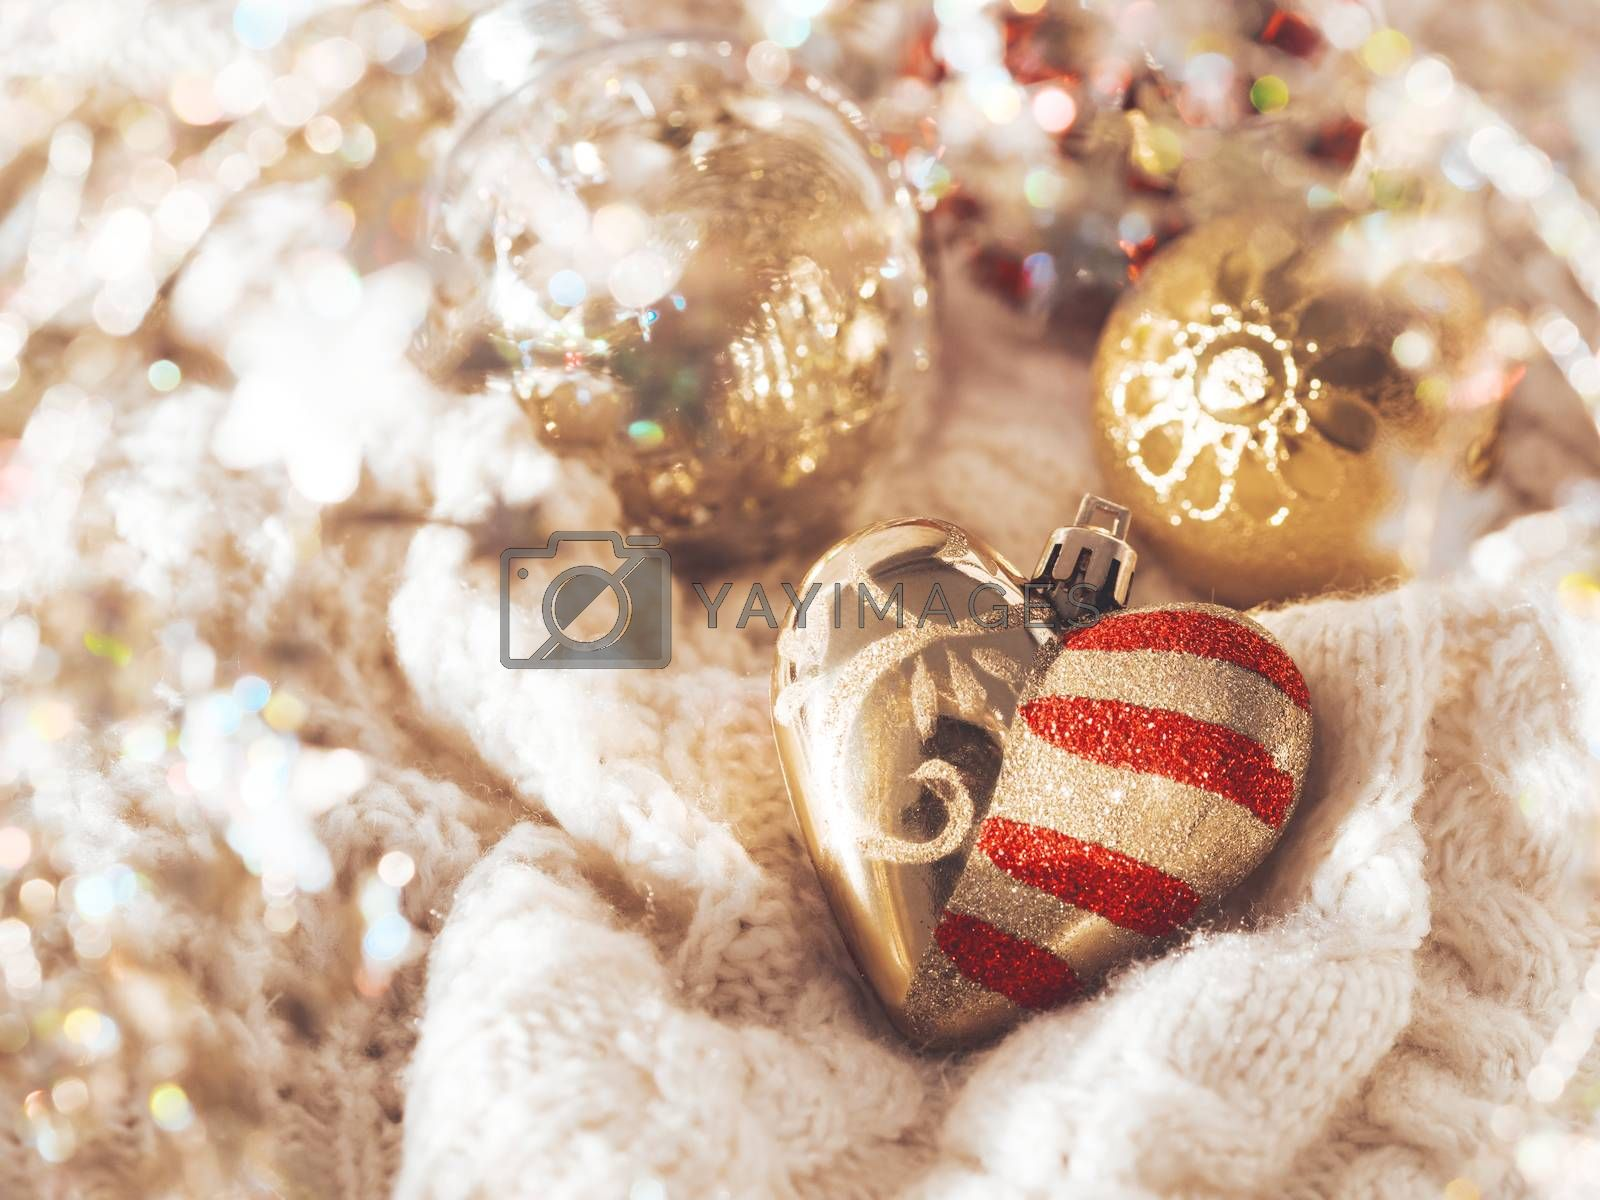 Royalty free image of Golden heart for Christmas tree on cable-knit sweater. Decorative symbol of love with red stripes and spangles. Winter holiday spirit. New year celebration. by aksenovko